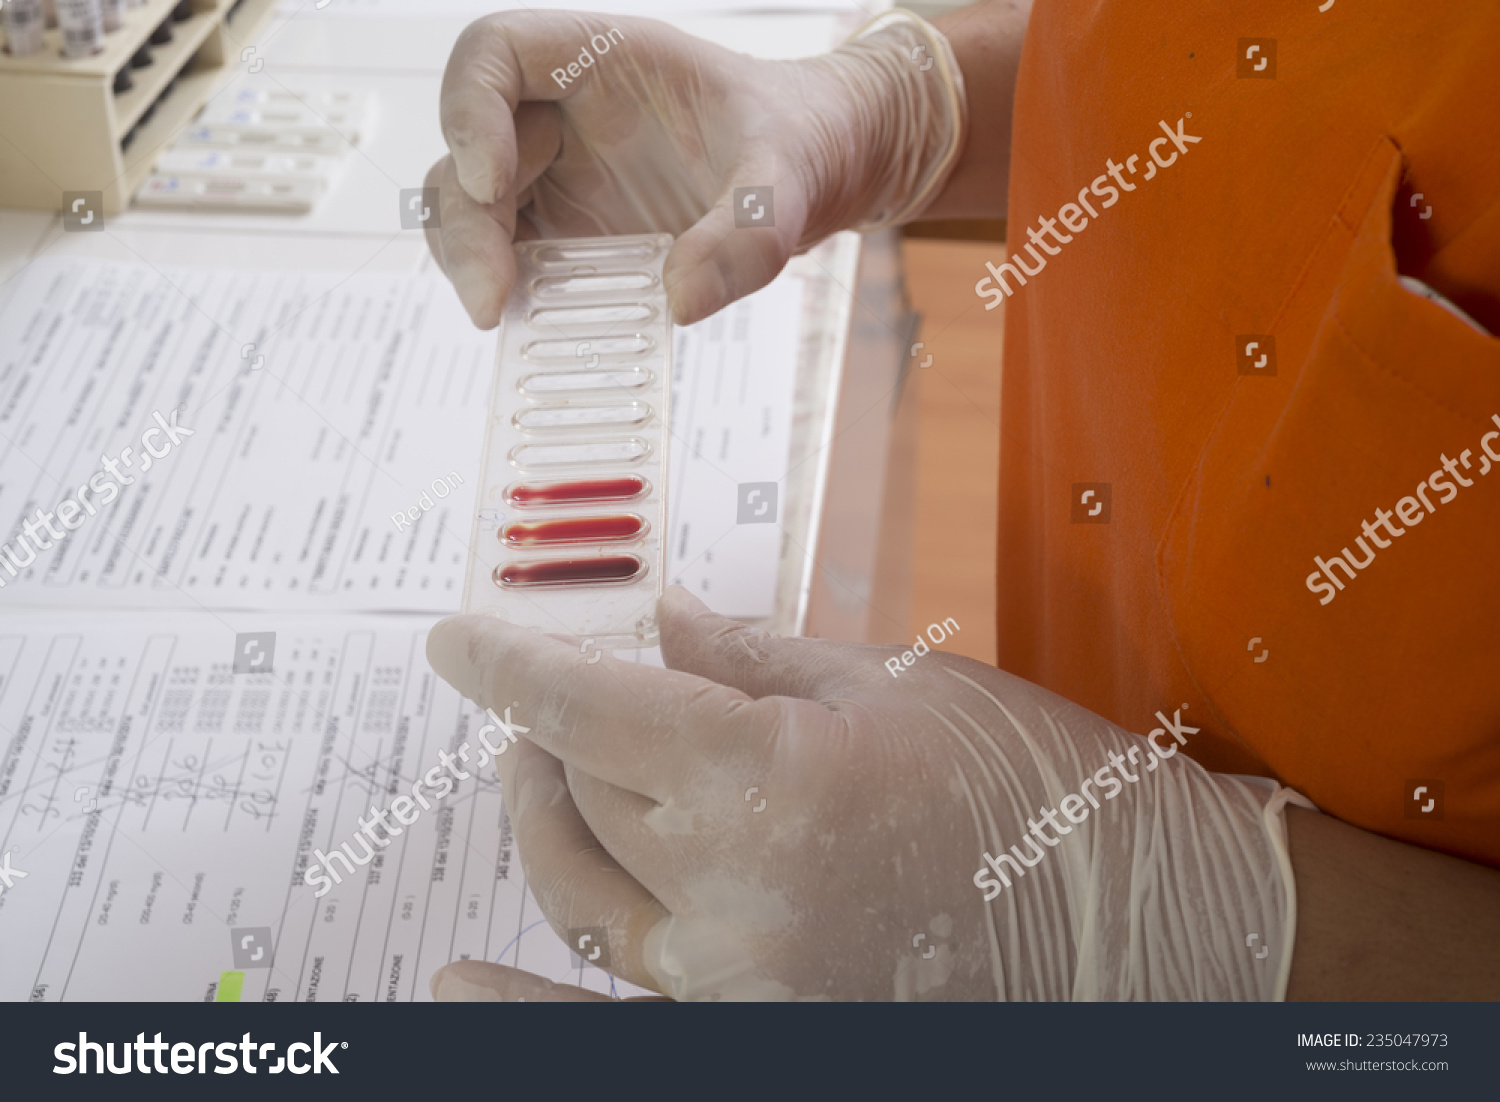 Ysis Laboratory Blood Test Real Action Stock Photo